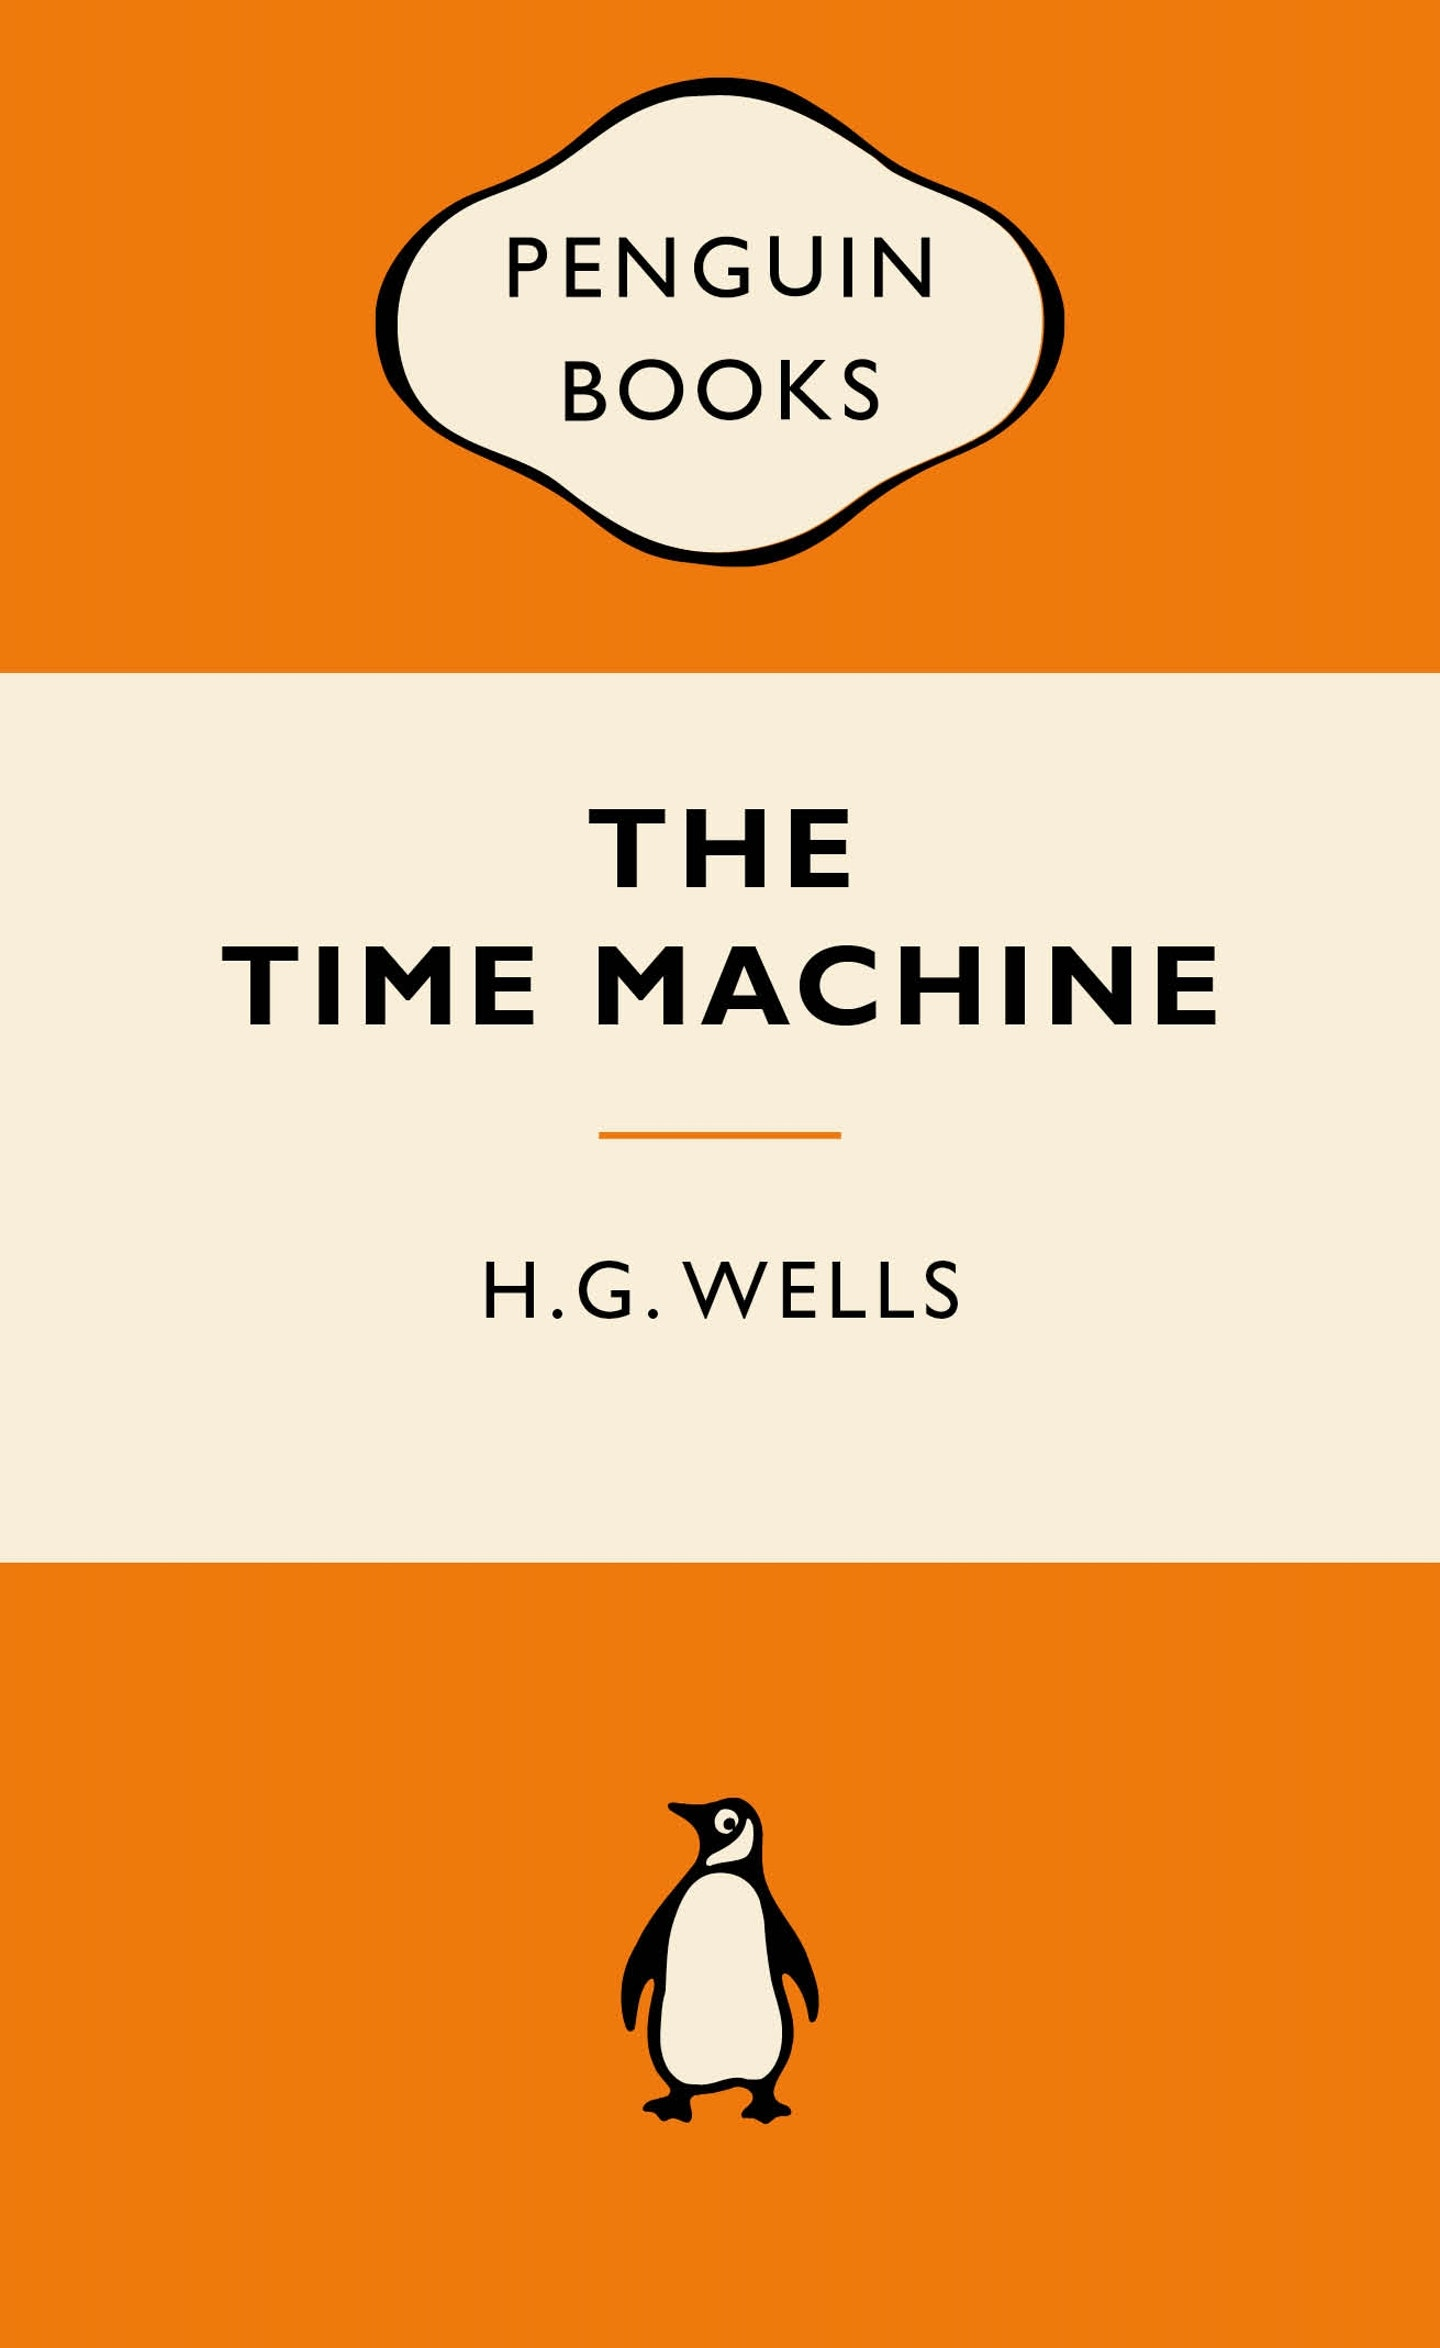 a movie book comparison of the time machine by h g wells George orwell's animal farm - audio: time magazine  andre norton, jules verne, kurt vonnegut, h g wells  the radio adaptation is shortened in comparison to.